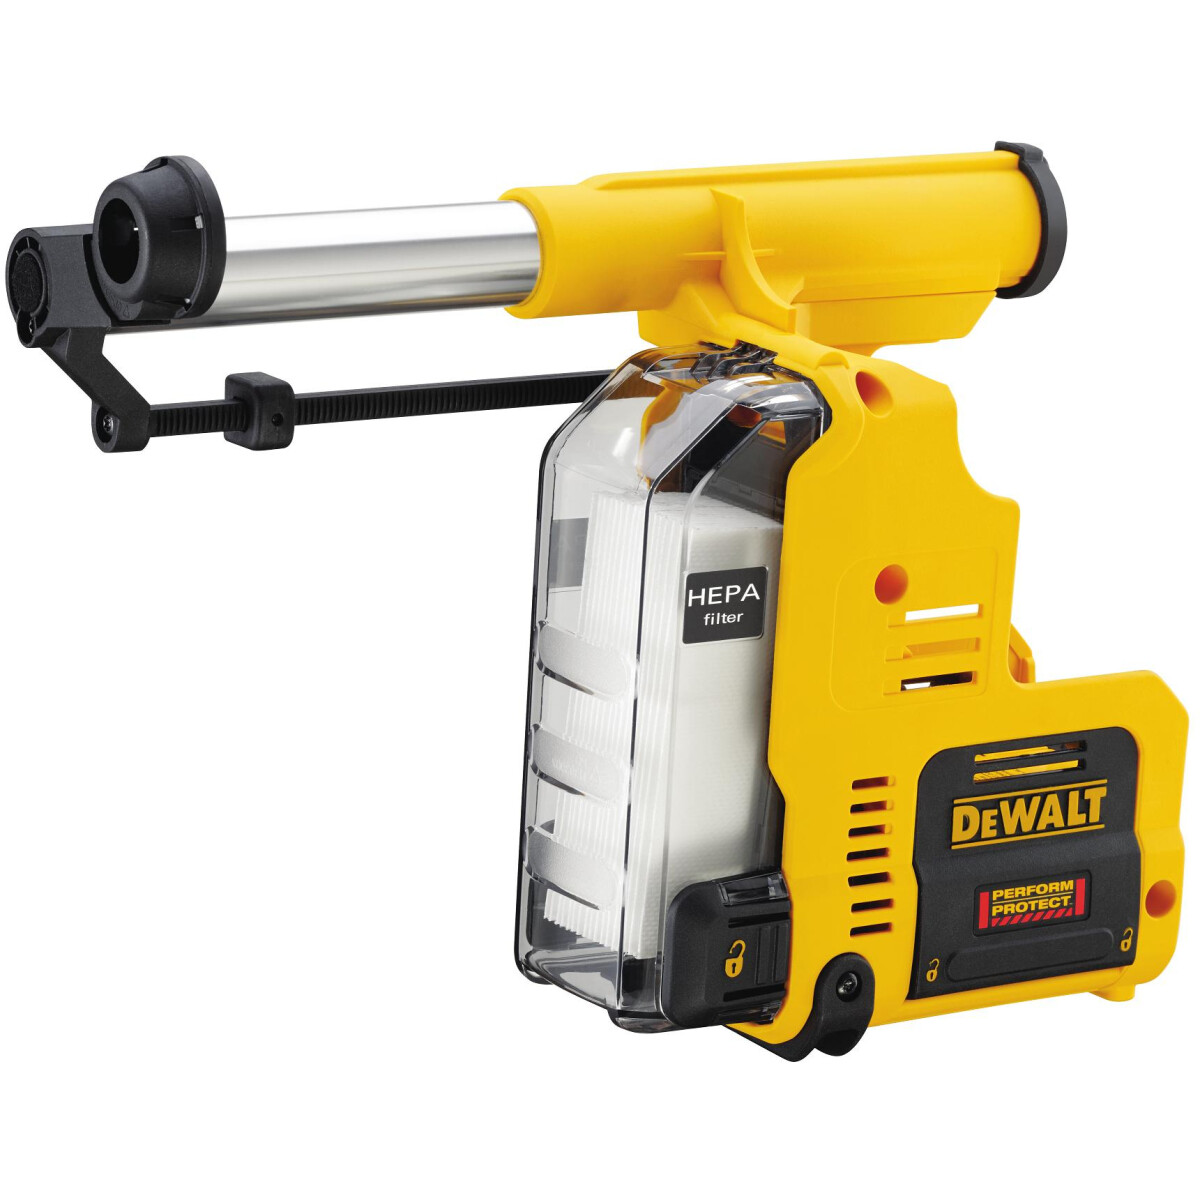 Dewalt Dust Extractor >> Dewalt D25303dh 18v Body Only Cordless Dust Extraction System